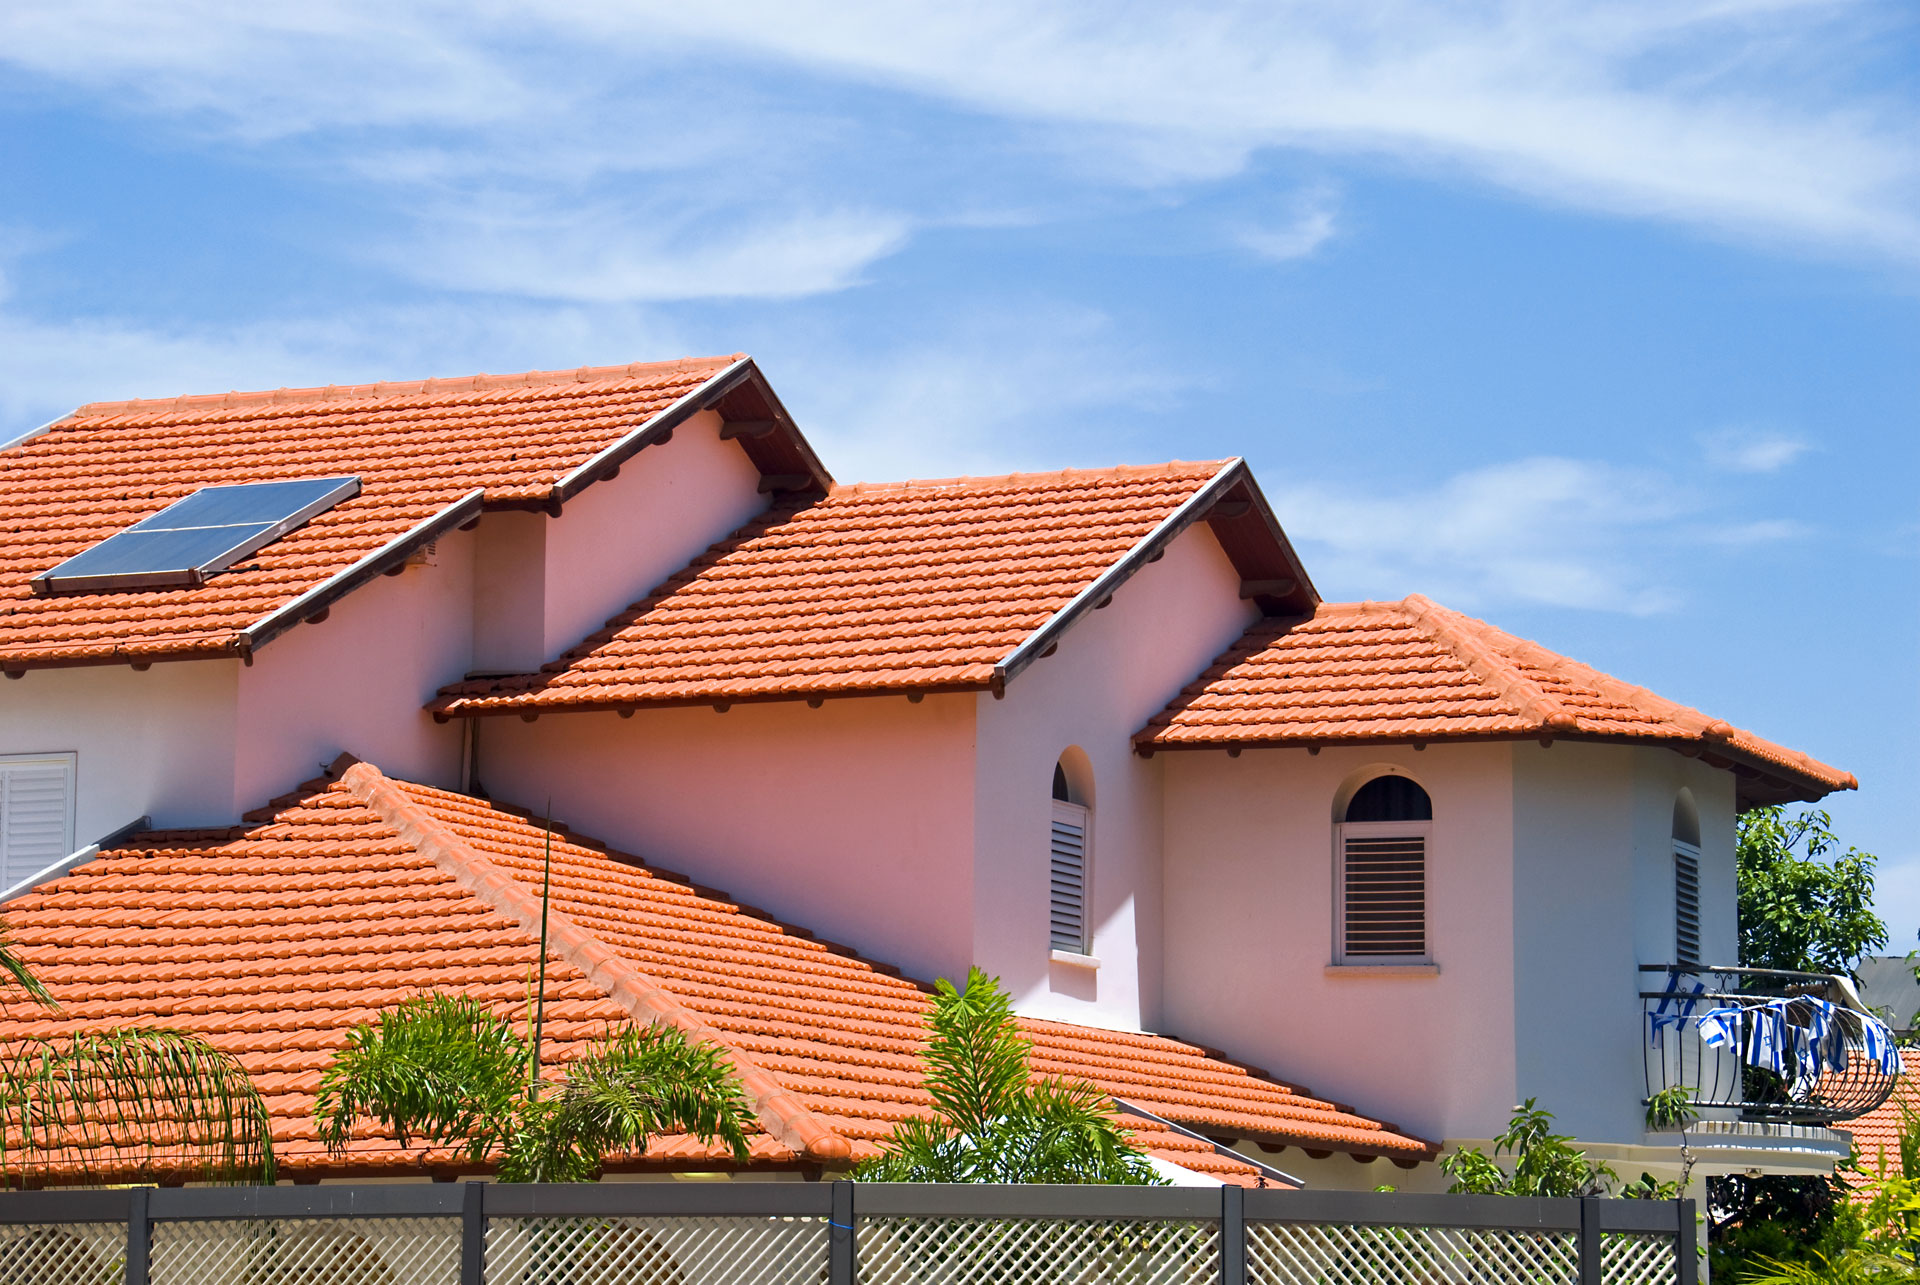 Roofing Safety — The Primary Hazards of a Damaged Roof